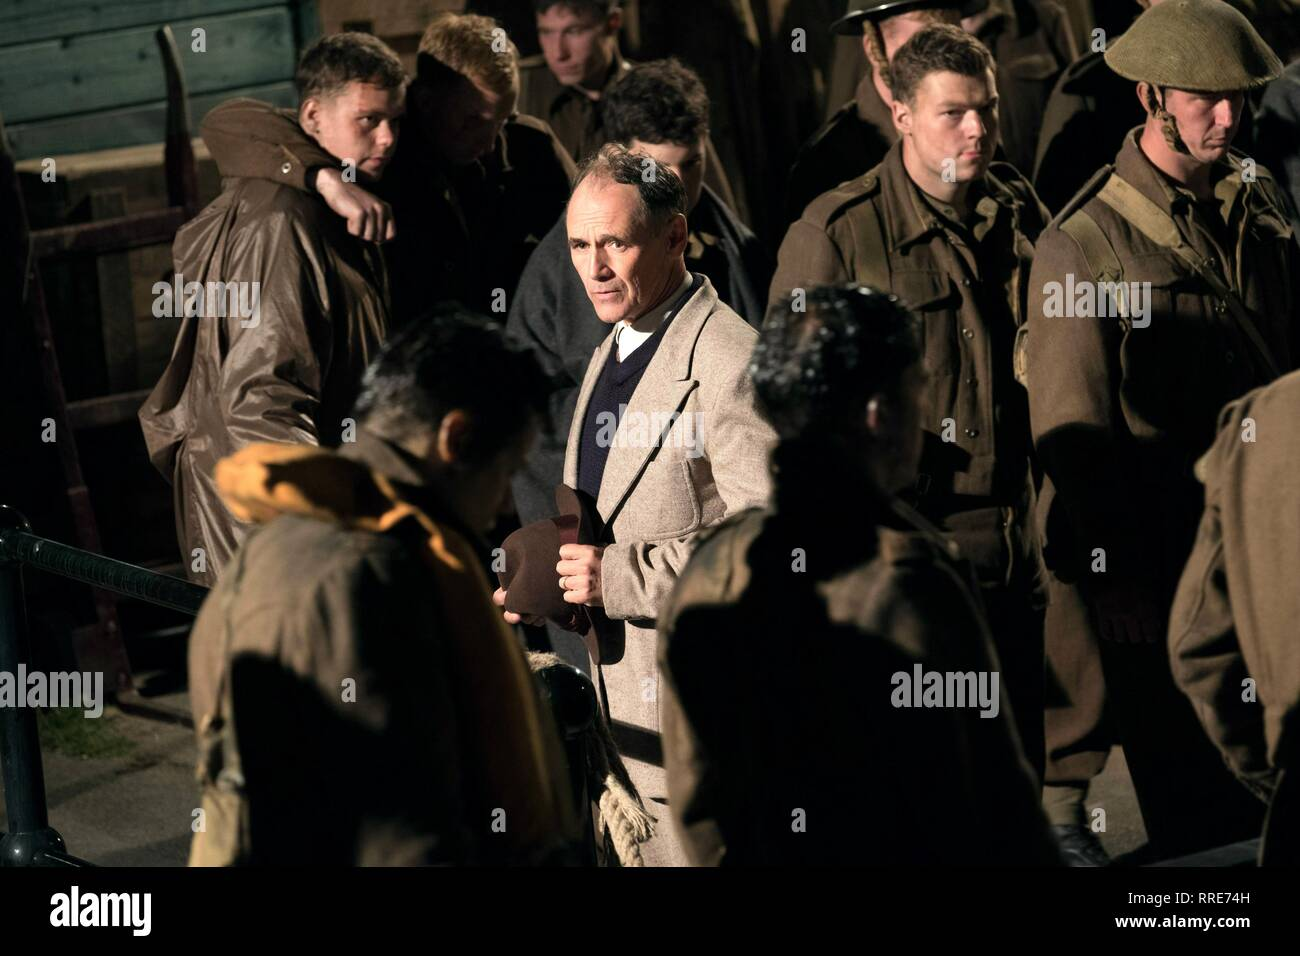 DUNKIRK, MARK RYLANCE, 2017 - Stock Image